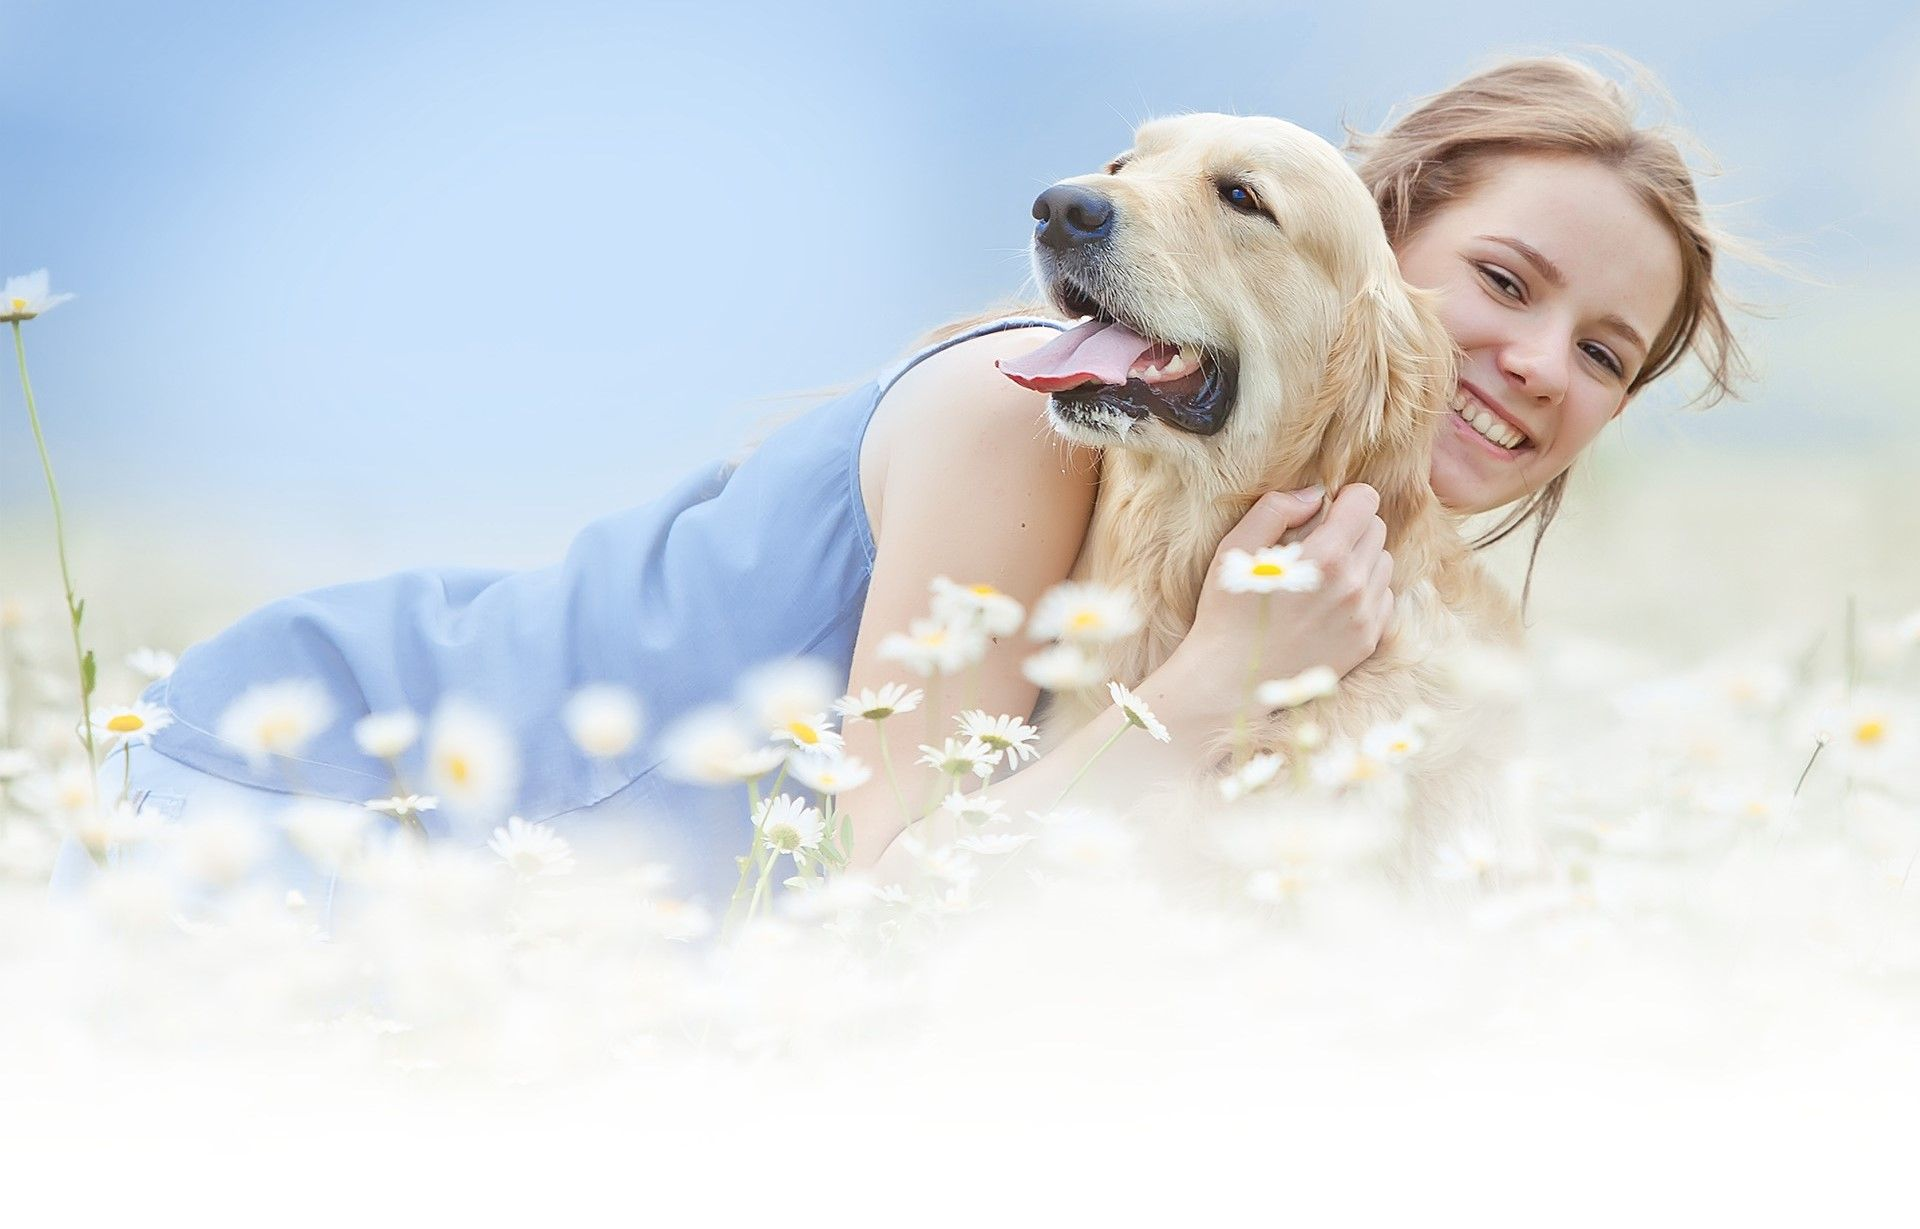 happy pet with its owner